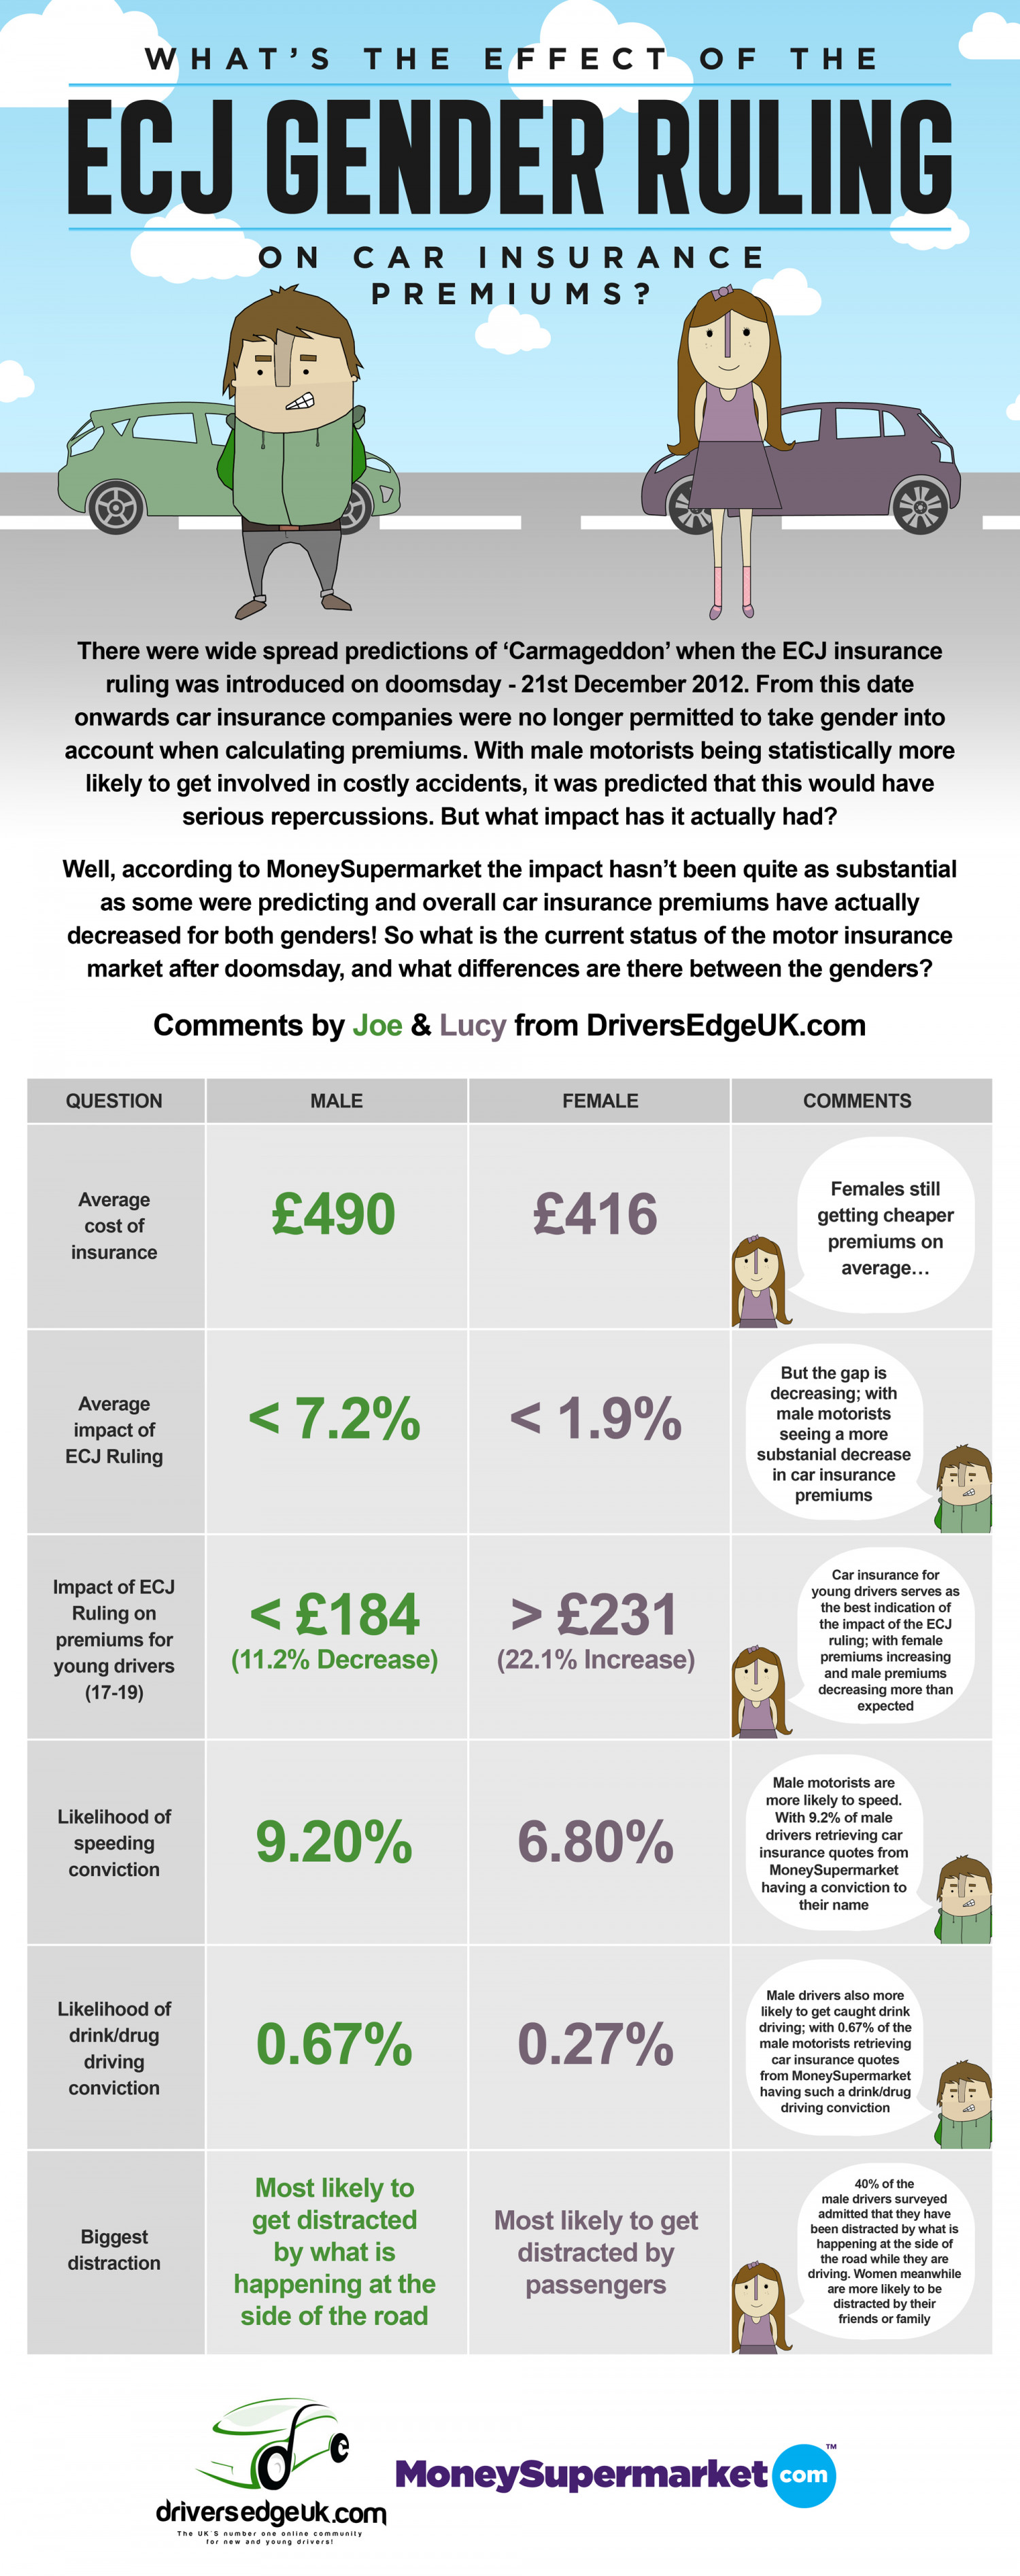 What's The Effect Of The ECJ Gender Ruling On Car Insurance Premiums? Infographic